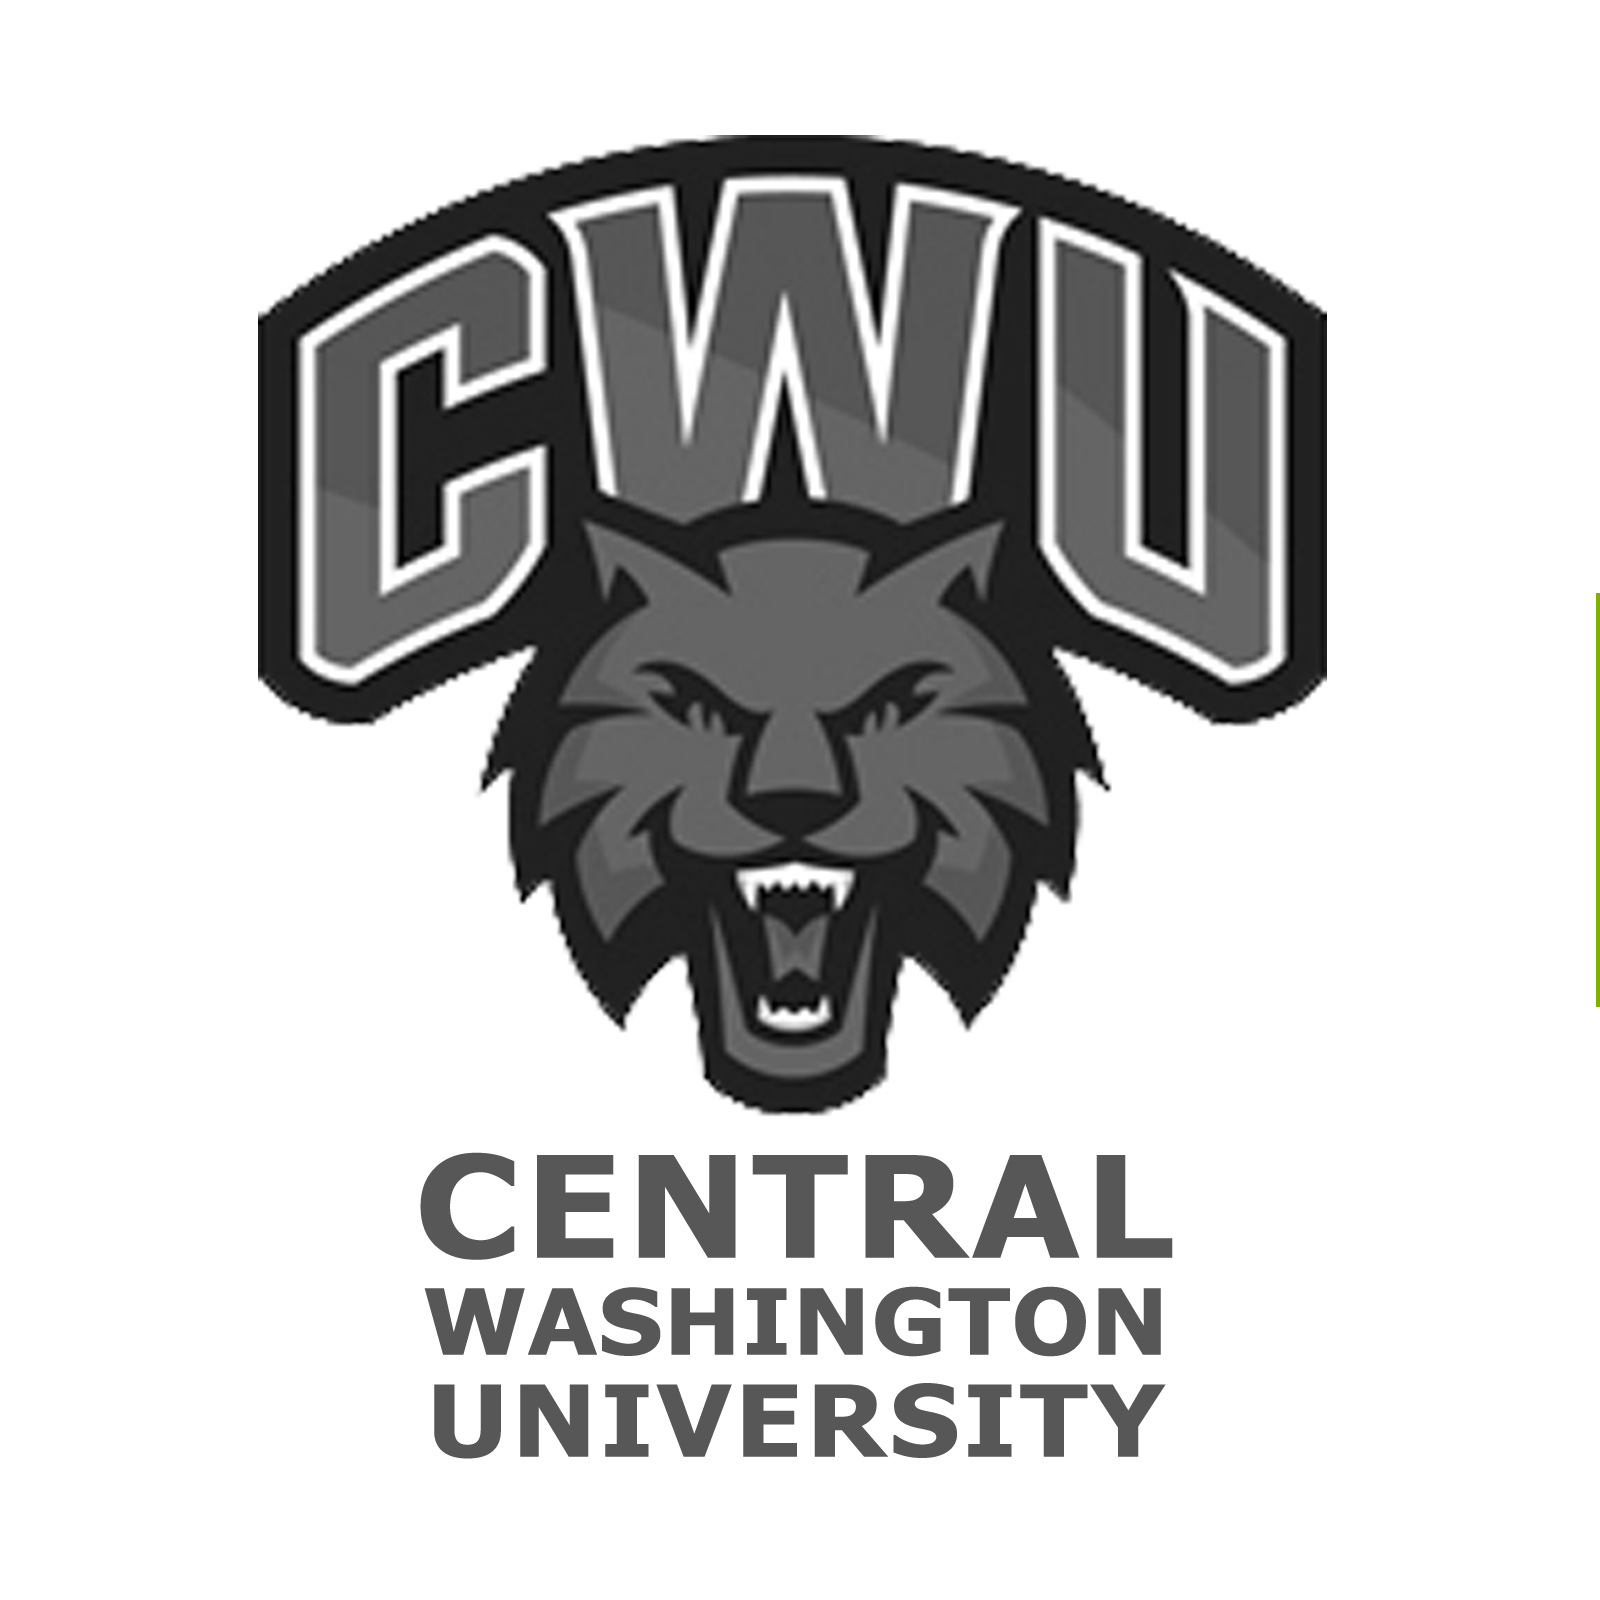 Central Washington University Challenge Coin CWU Challenge Coin